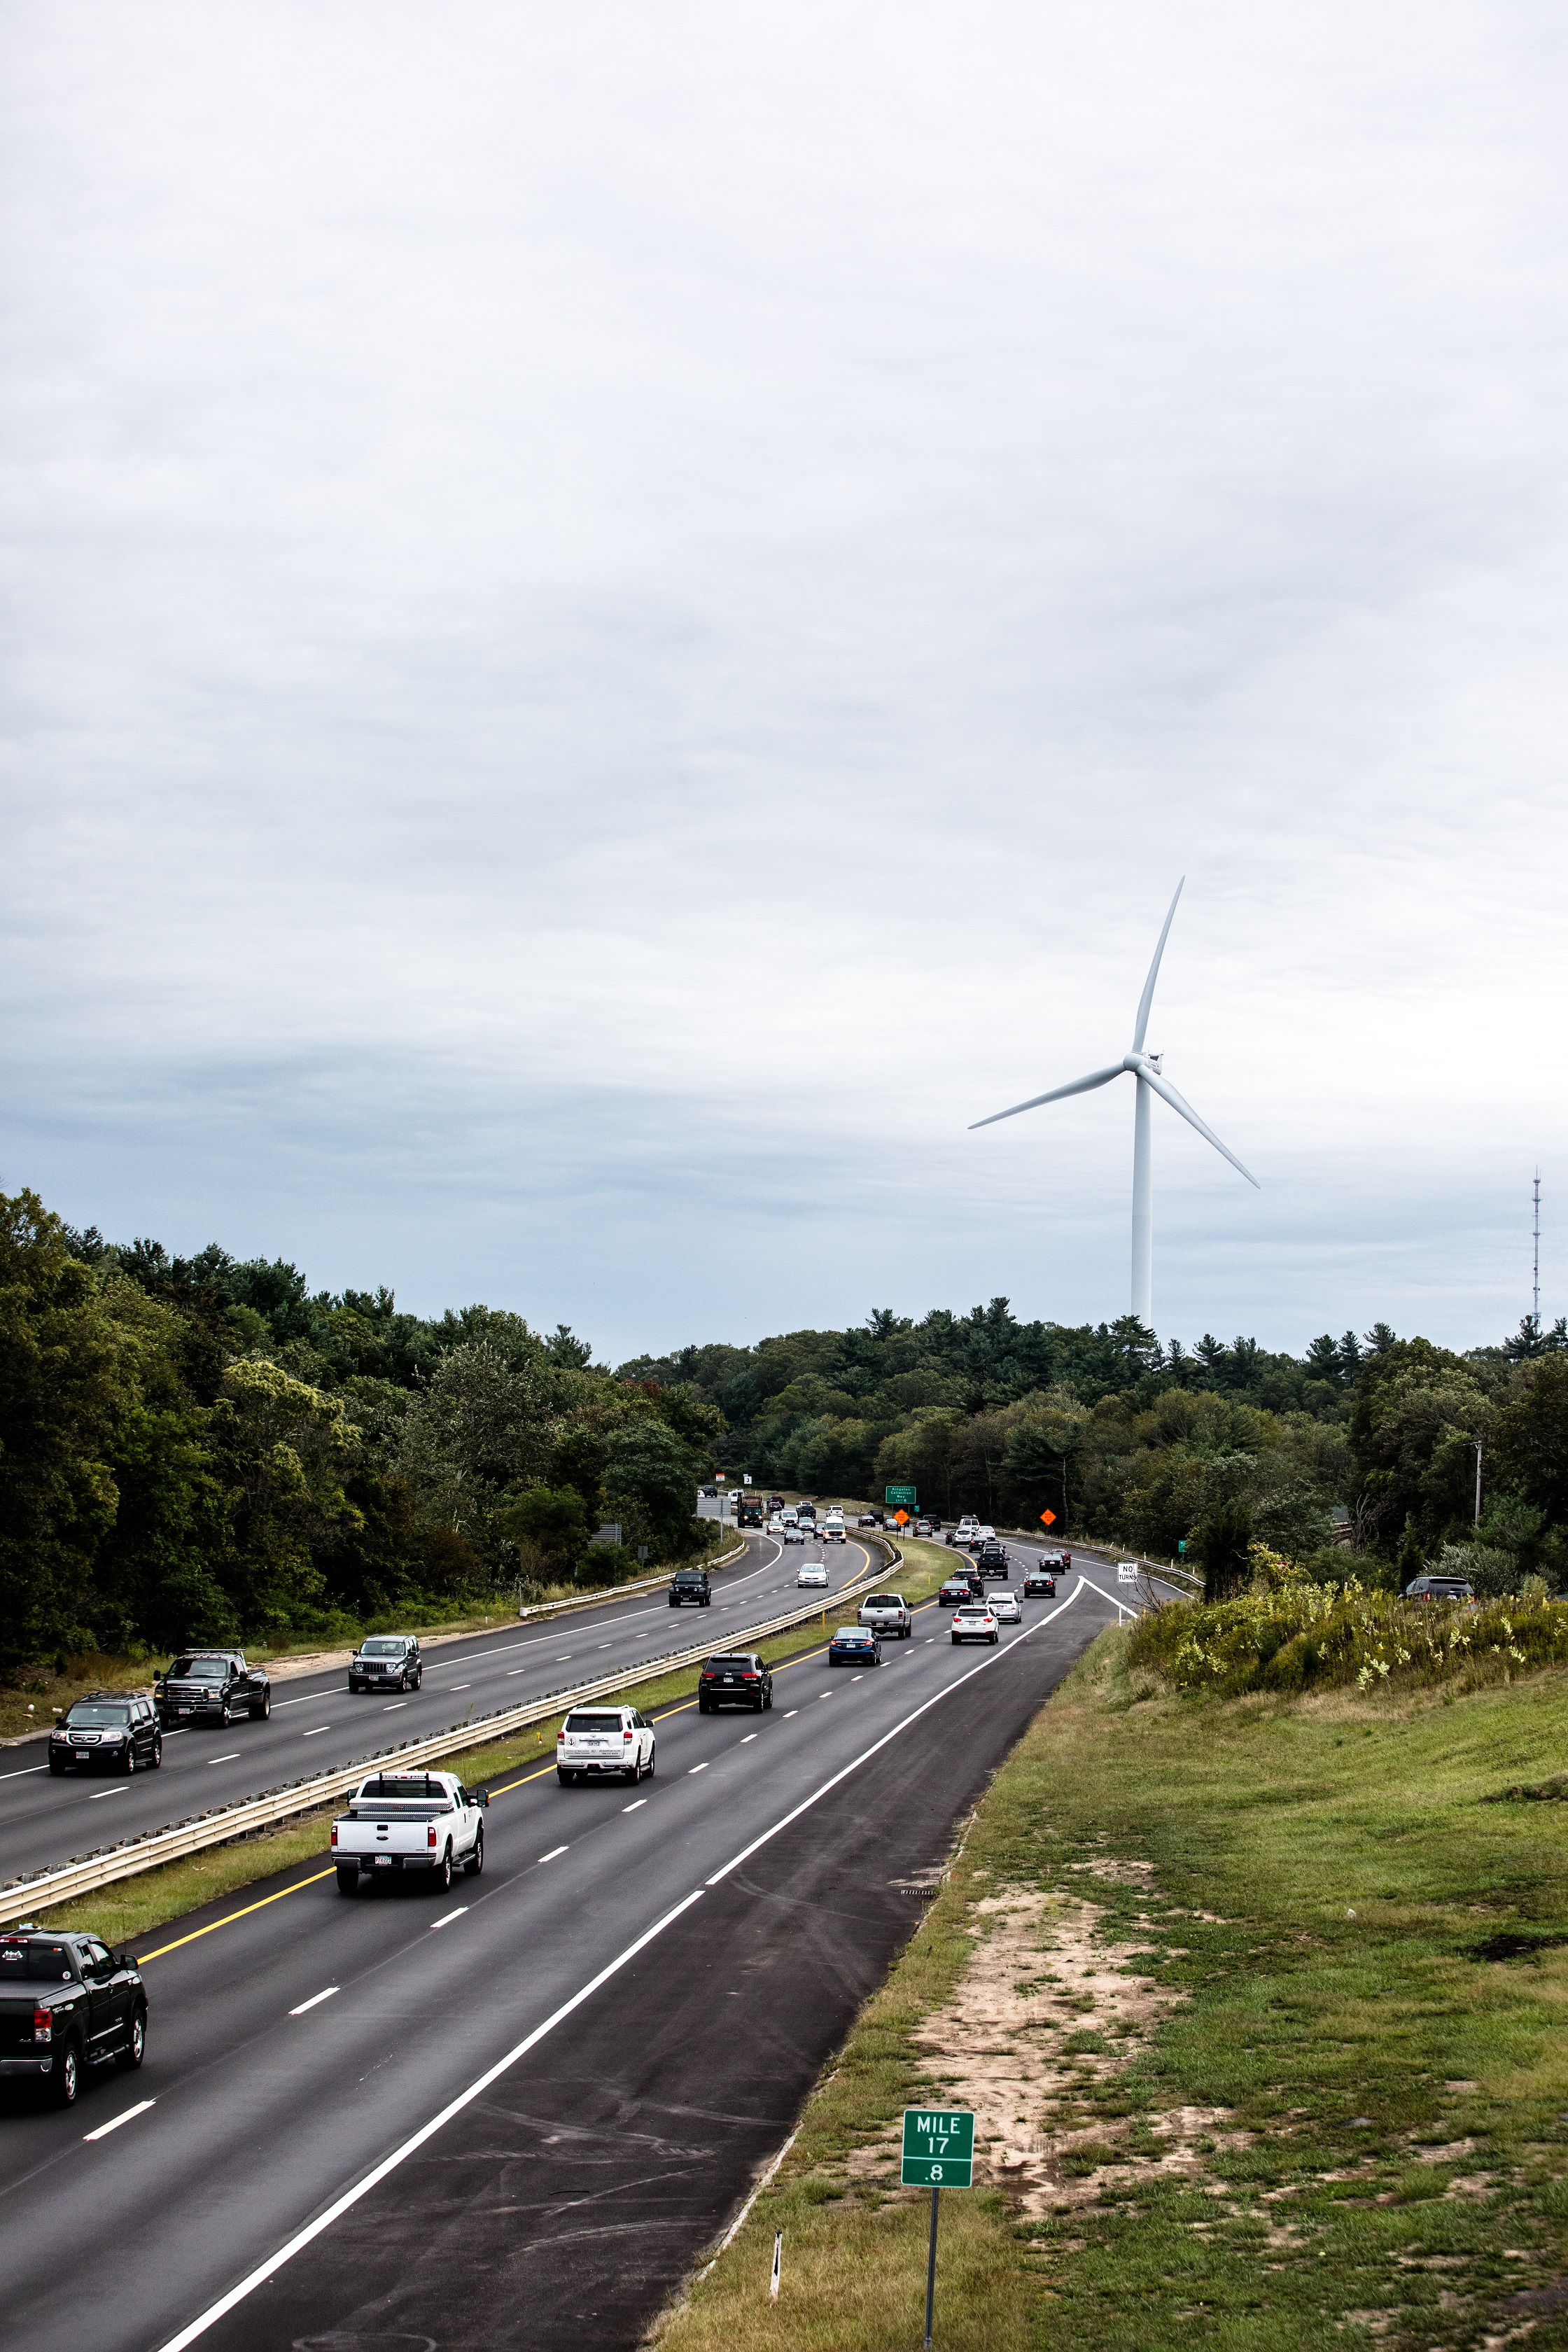 Wind Turbine, Rt. 3 and 3a overpass 1 The Expedition Chris Babu